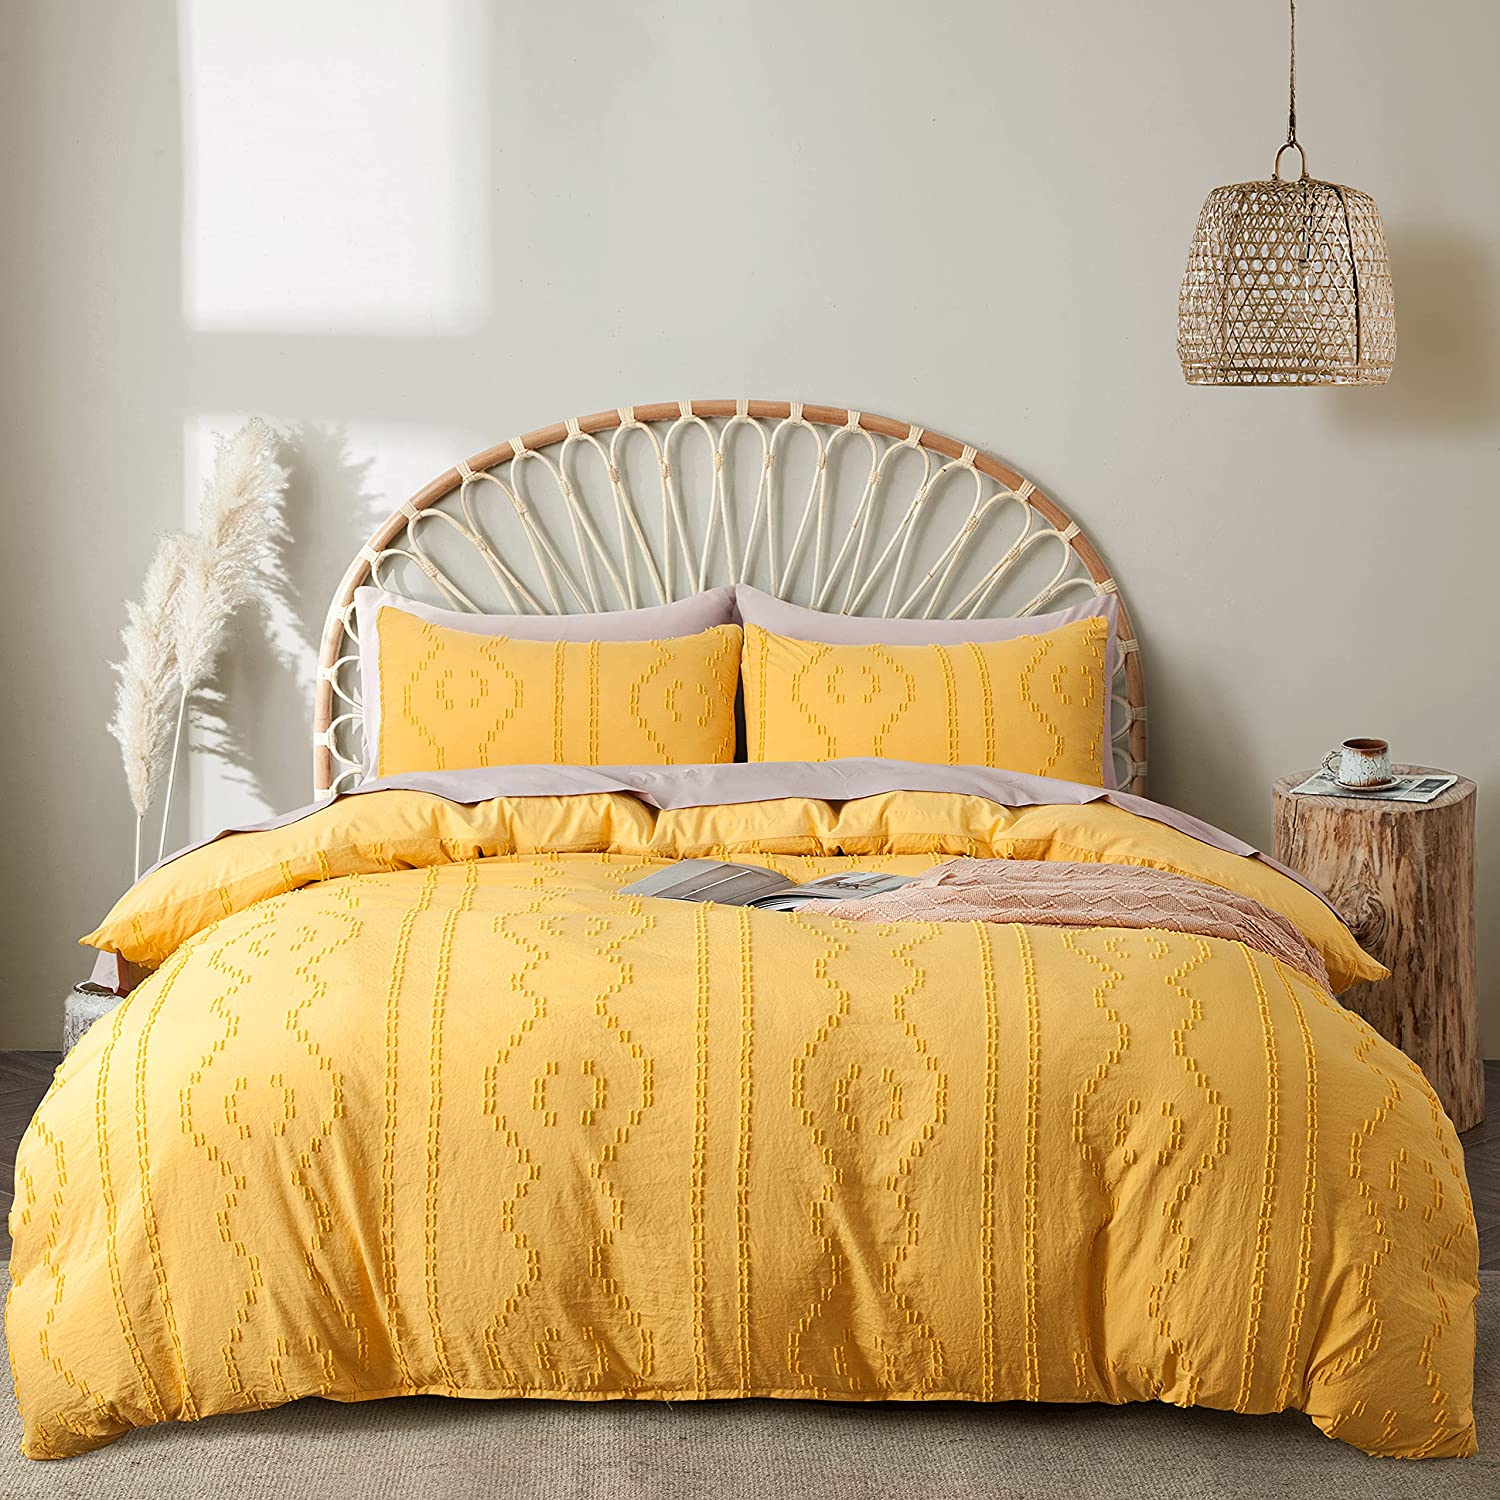 BEDAZZLED Duvet Covers King Size,3pcs Soft and Embroidery Shabby Chic Boho Bedding Sets,100% Washed Microfiber Tufted Comforter Cover Set,Yellow